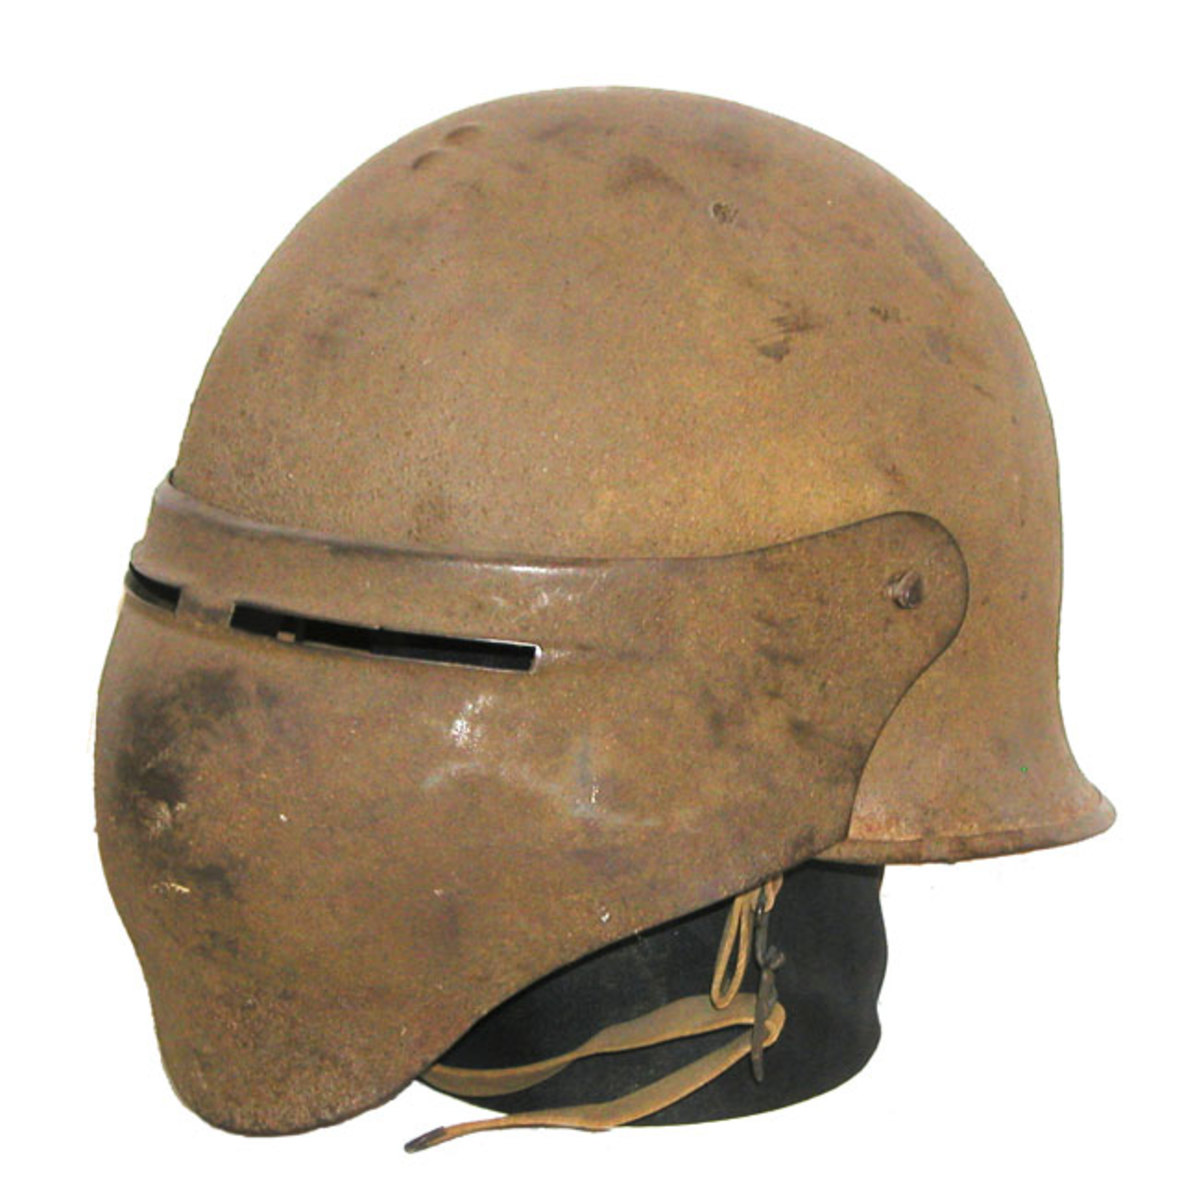 The most striking of the American experimental helmets to be produced in large numbers, the Model 8 featured a visor that offered almost complete protection to the wear's face. About 1,300 of these helmets were produced, though none received combat field-testing during WWI. (Author's collection)